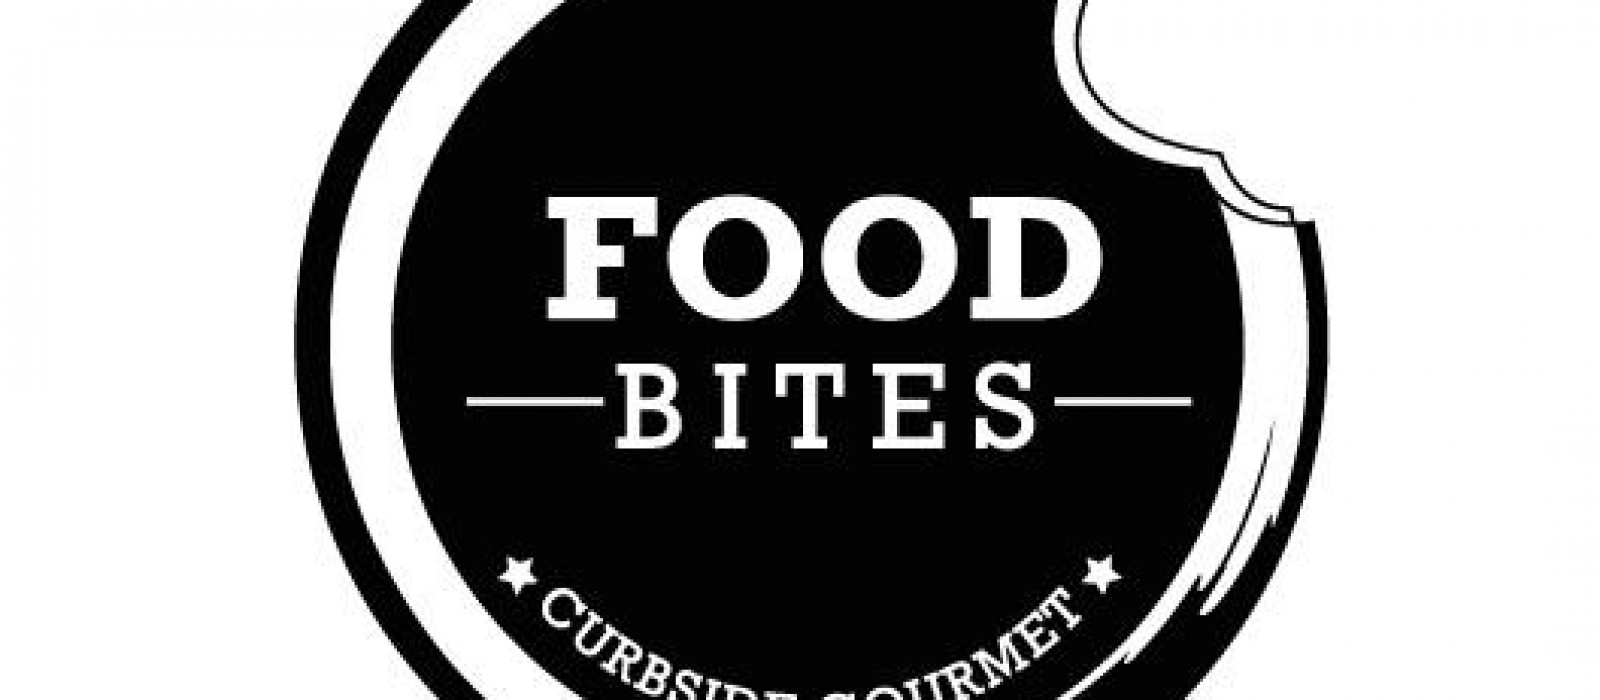 Food Bites: A Curbside Gourmet Experience